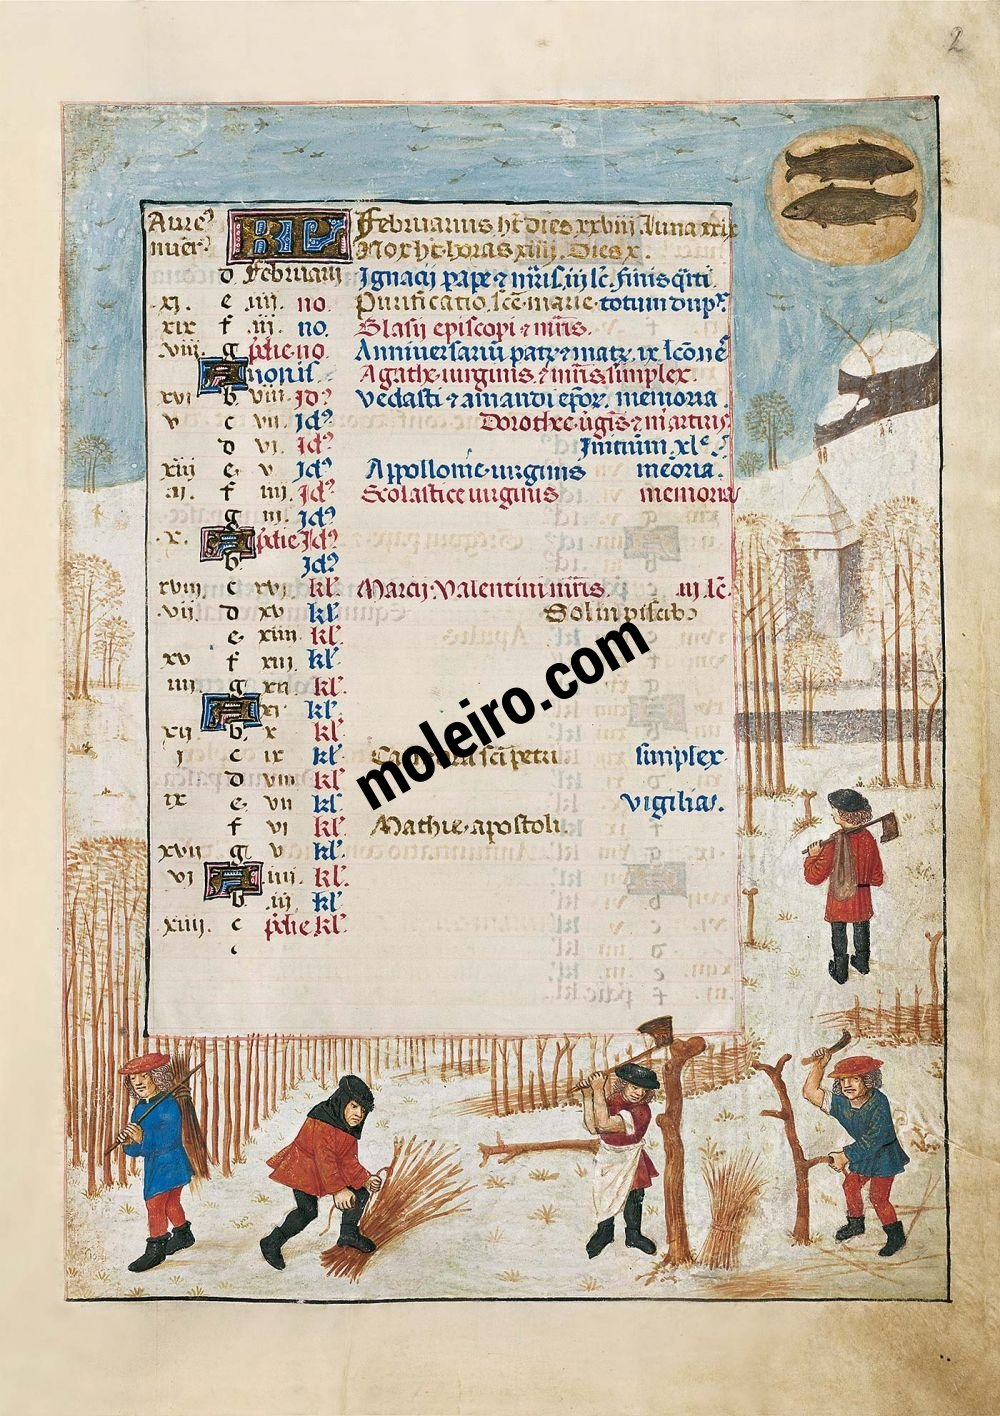 The Isabella Breviary f. 2r, February